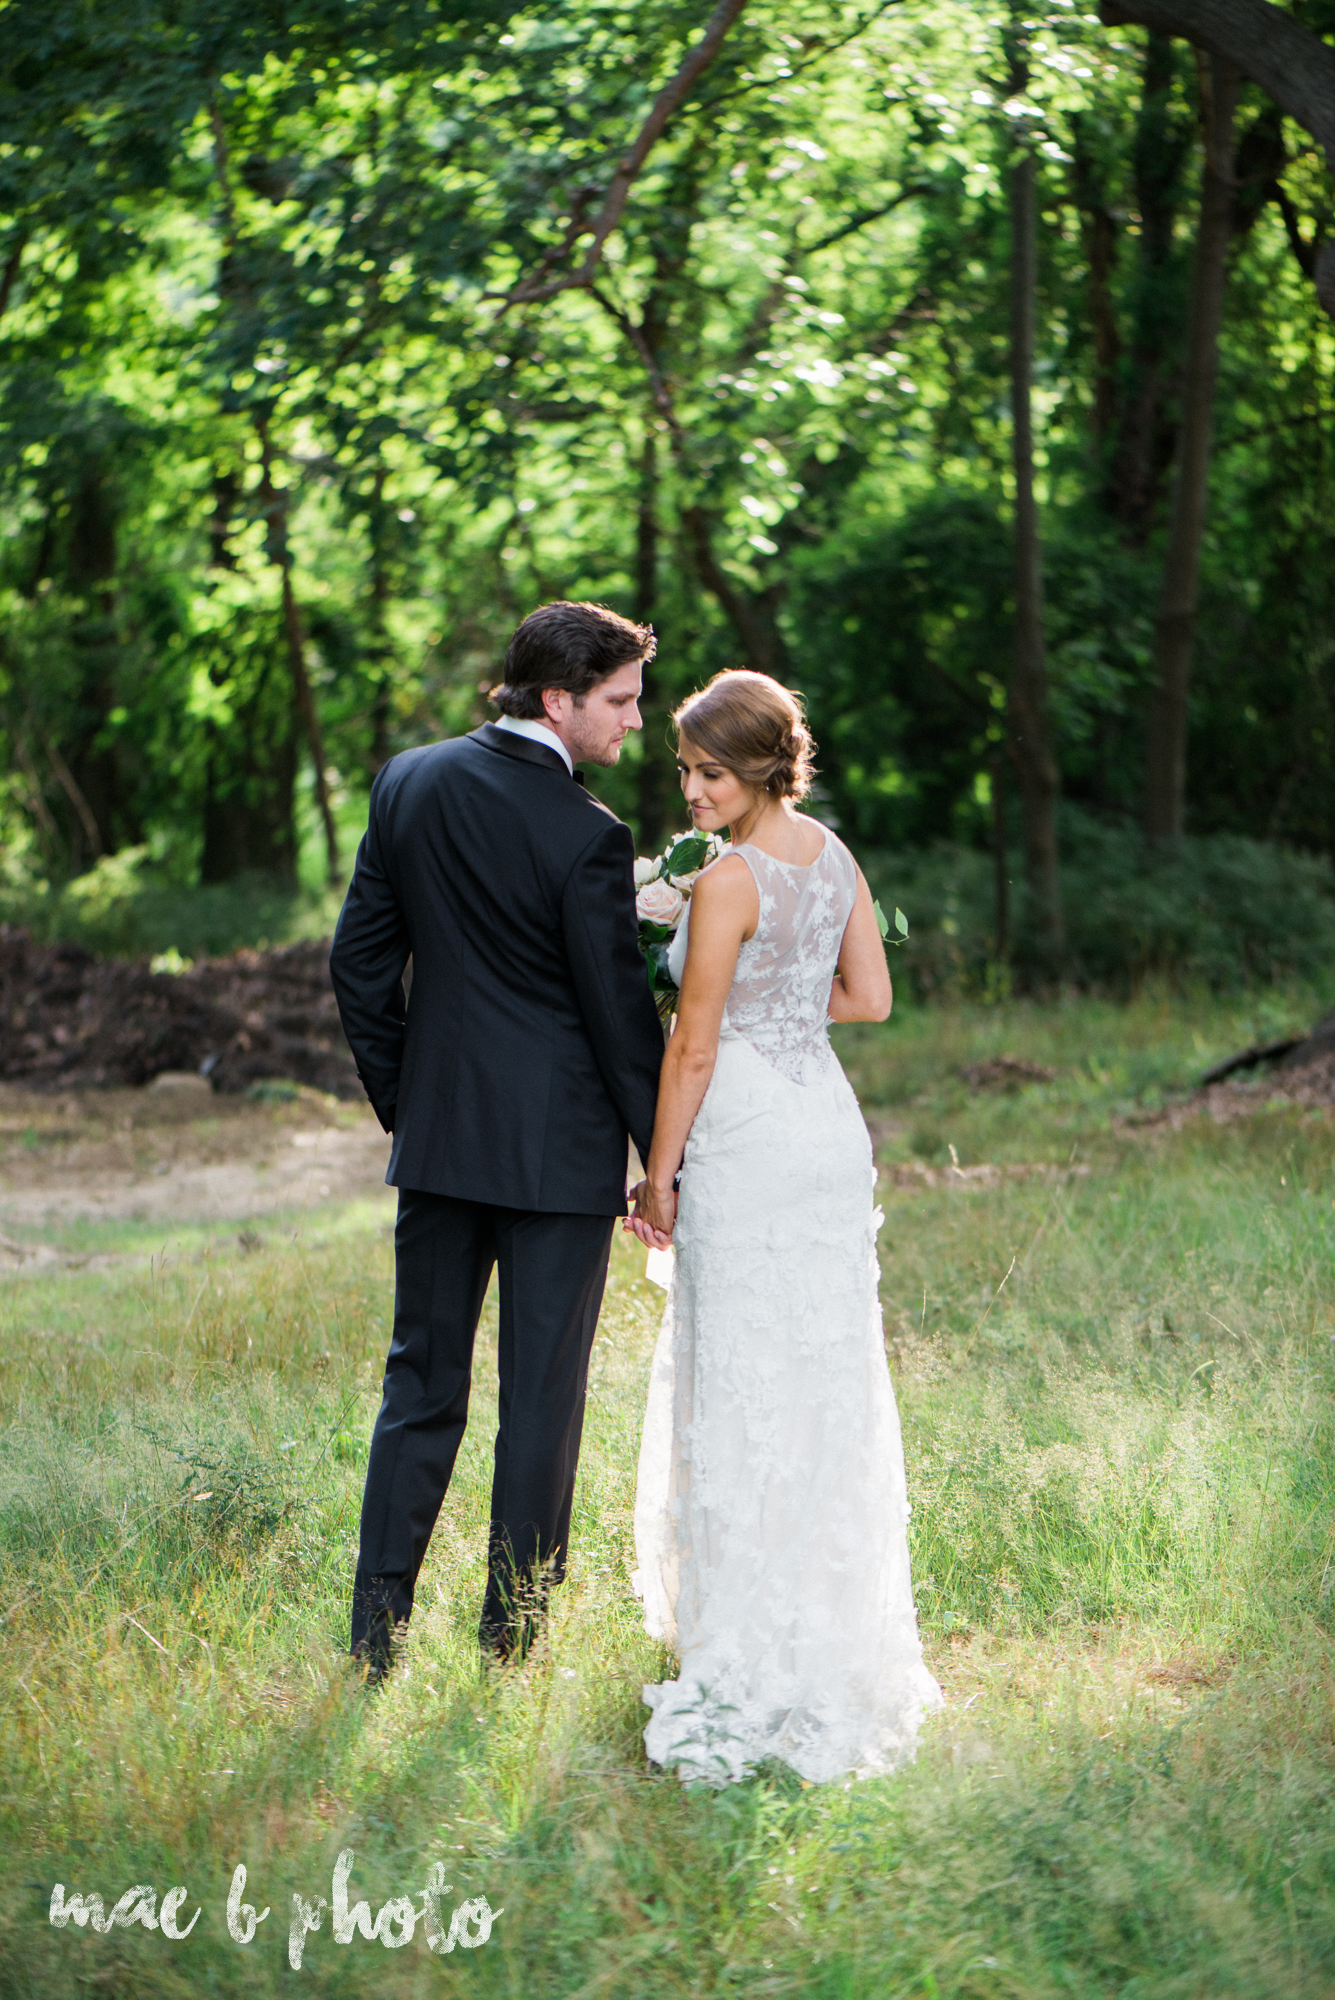 classic romantic summer wedding shoot at the mooreland mansion in cleveland ohio photographed by youngstown wedding photographer mae b photo-64.jpg